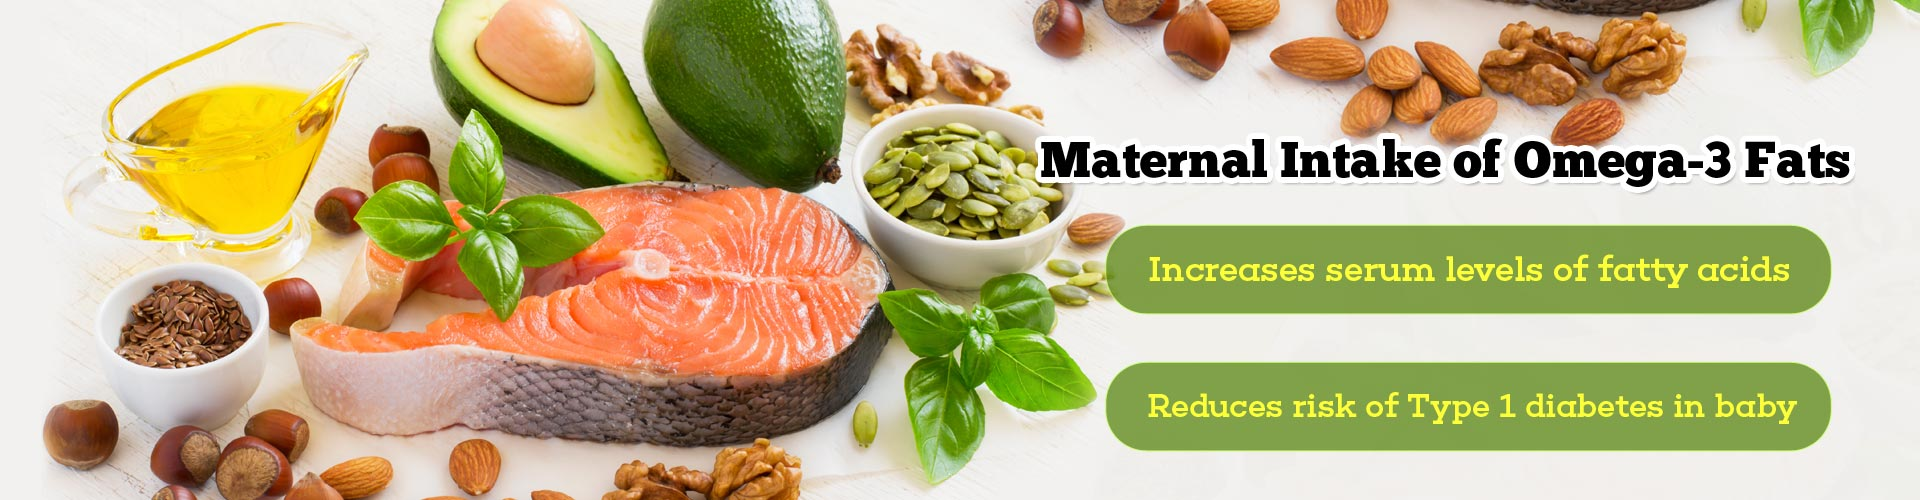 Does Maternal Intake of Omega-3 Fats Lower Type 1 Diabetes Risk in Baby